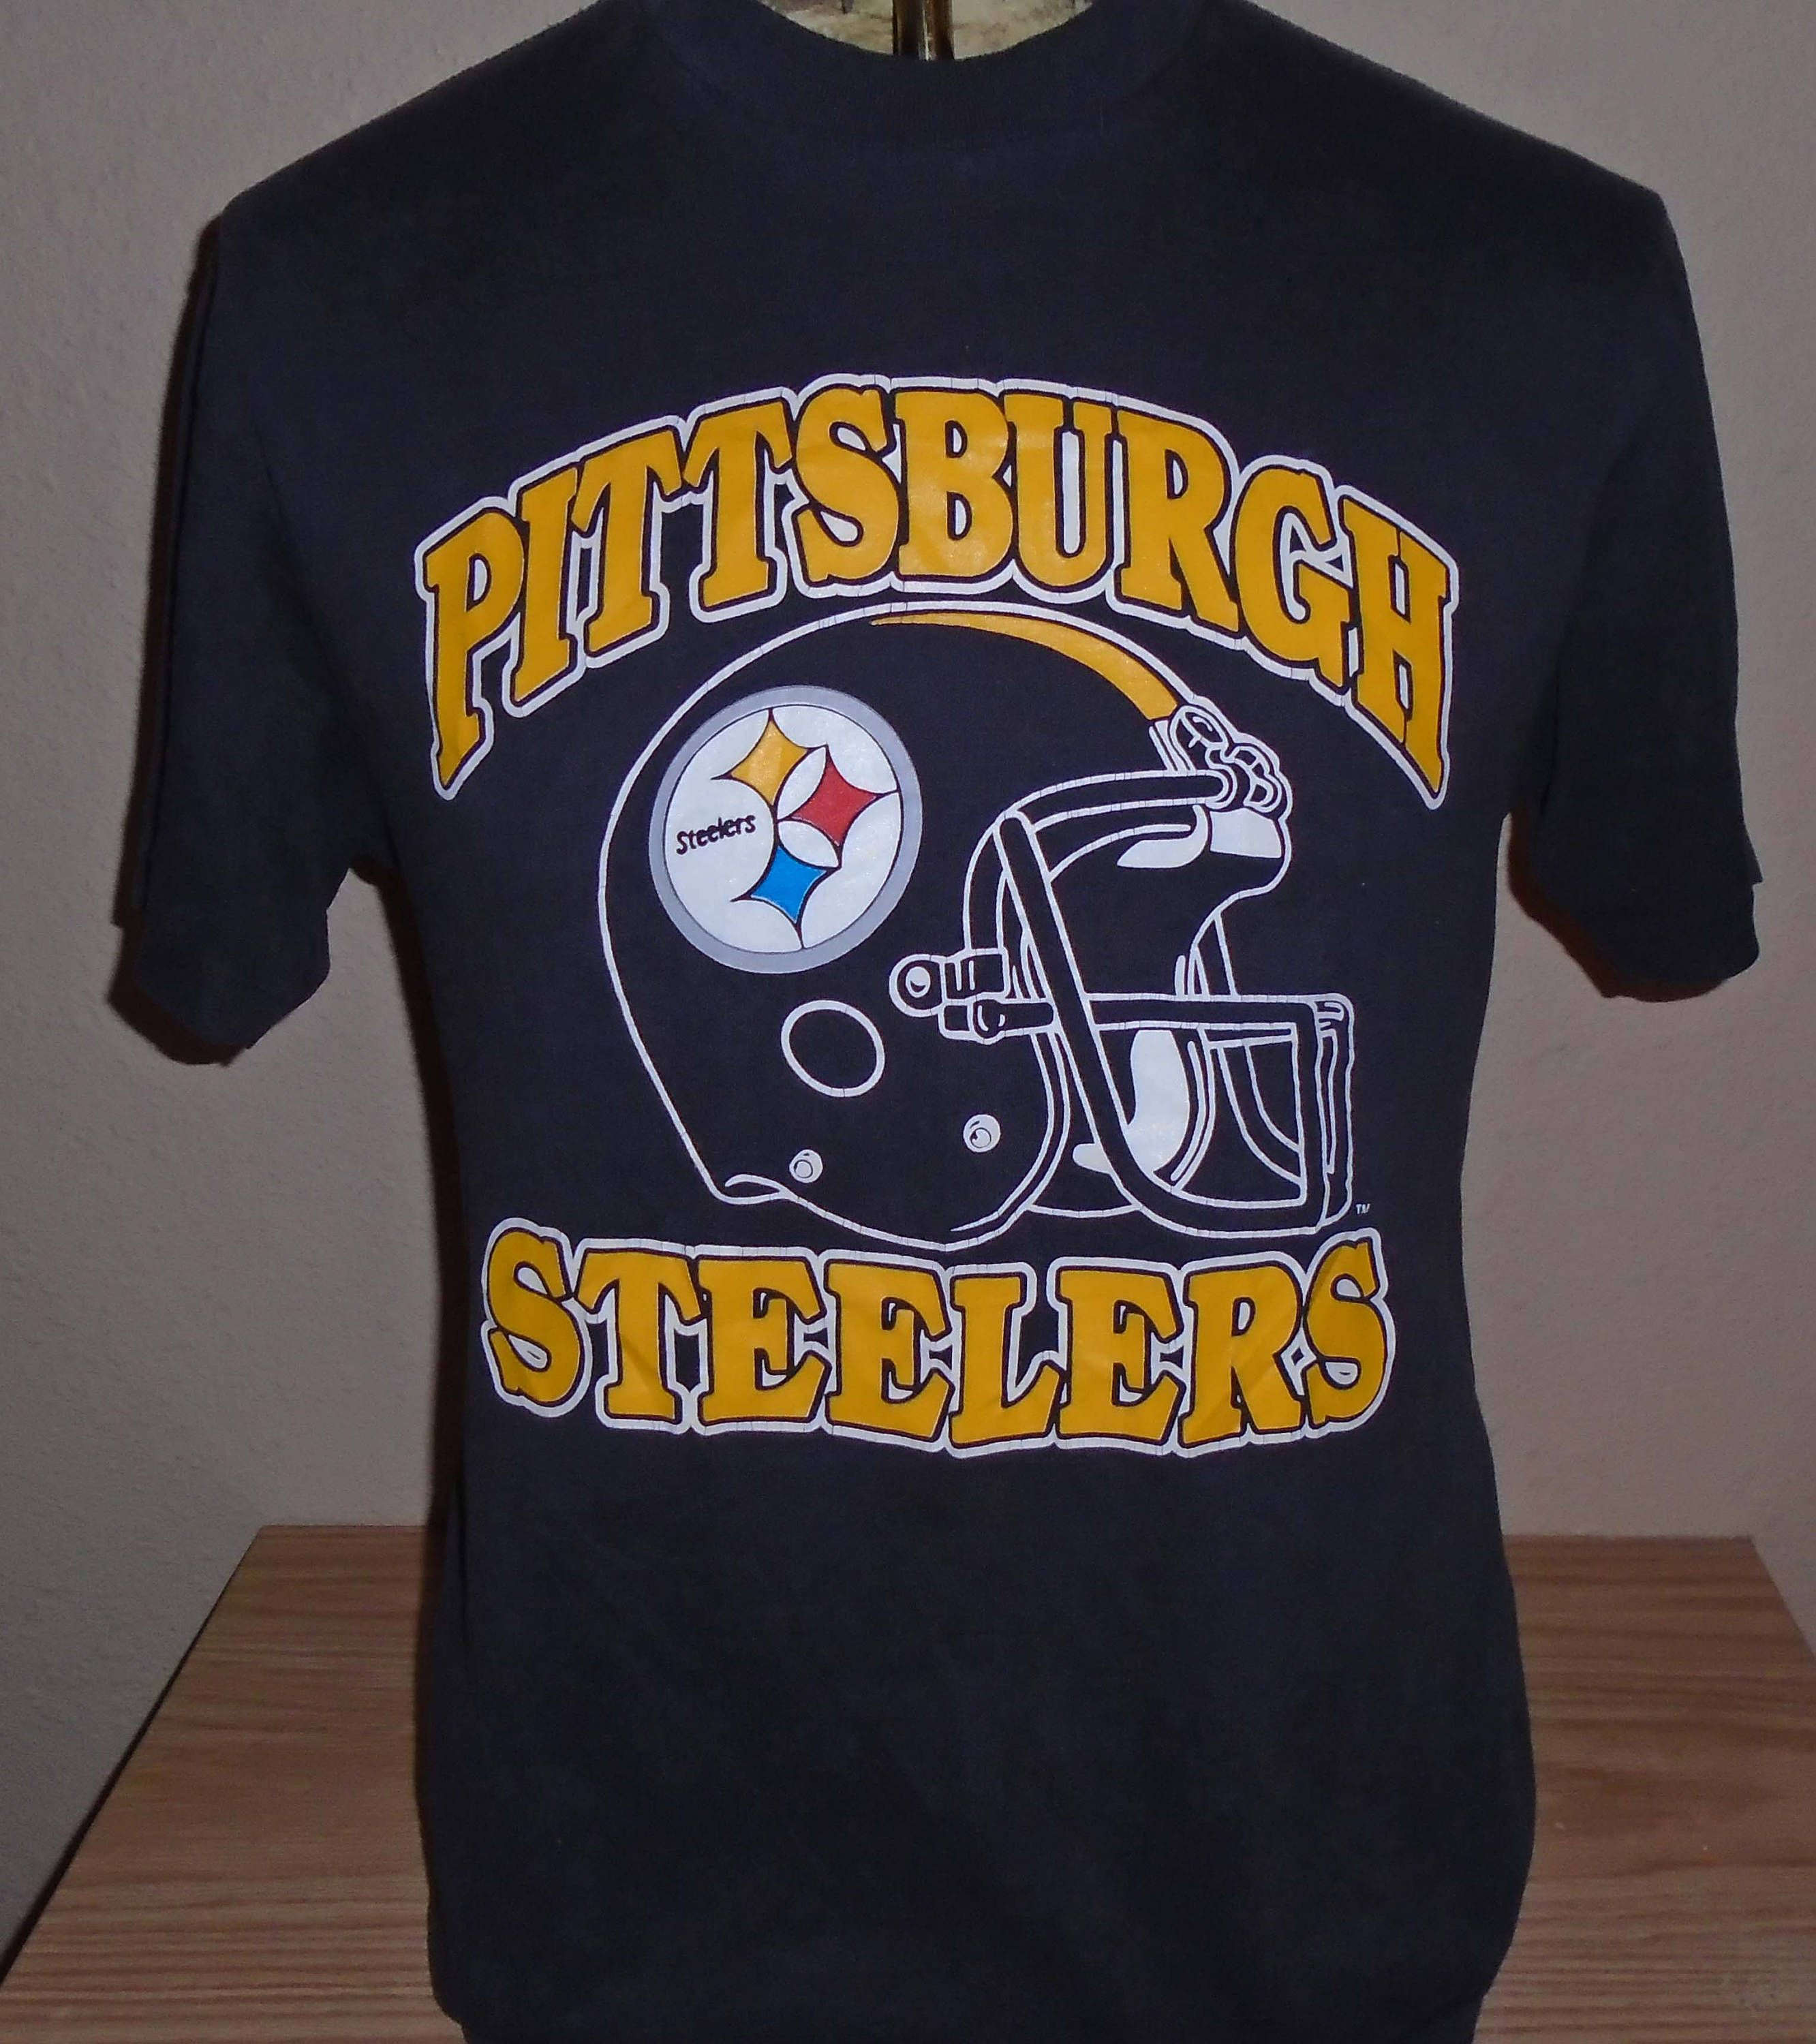 74ad7cadc3d vintage 1980s Pittsburgh Steelers football t shirt 50 50 Large by  vintagerhino247 on Etsy